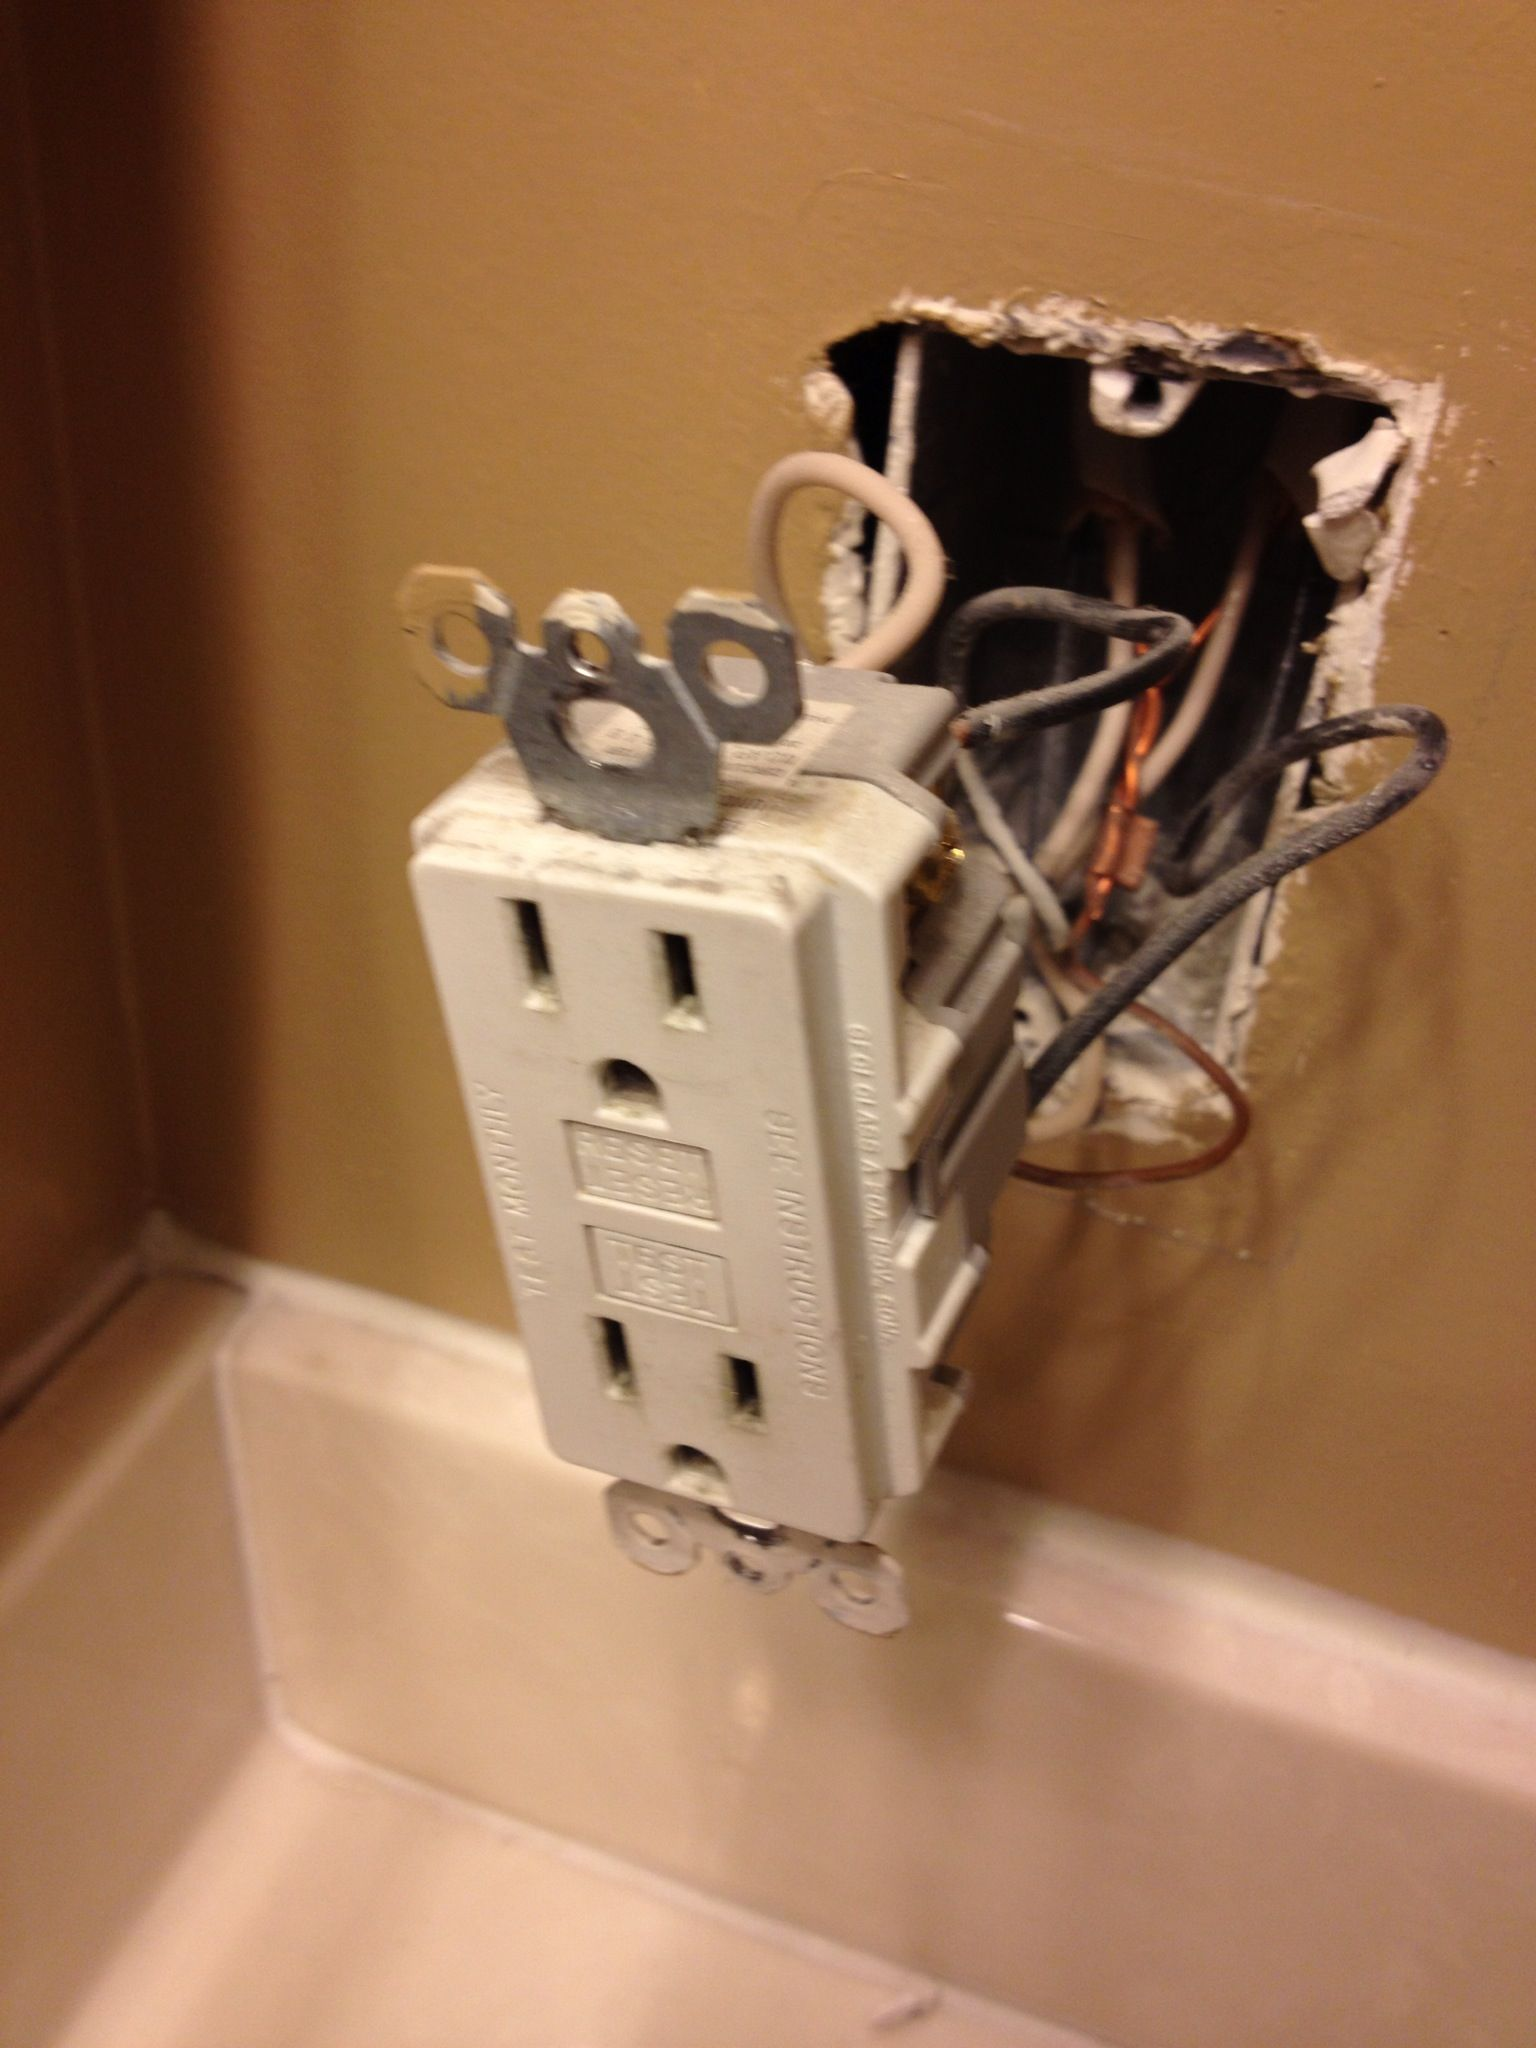 Installing A Gfci Outlet Home Diy Pinterest Outlets And Wiring How To Install Or Replace An With Switch